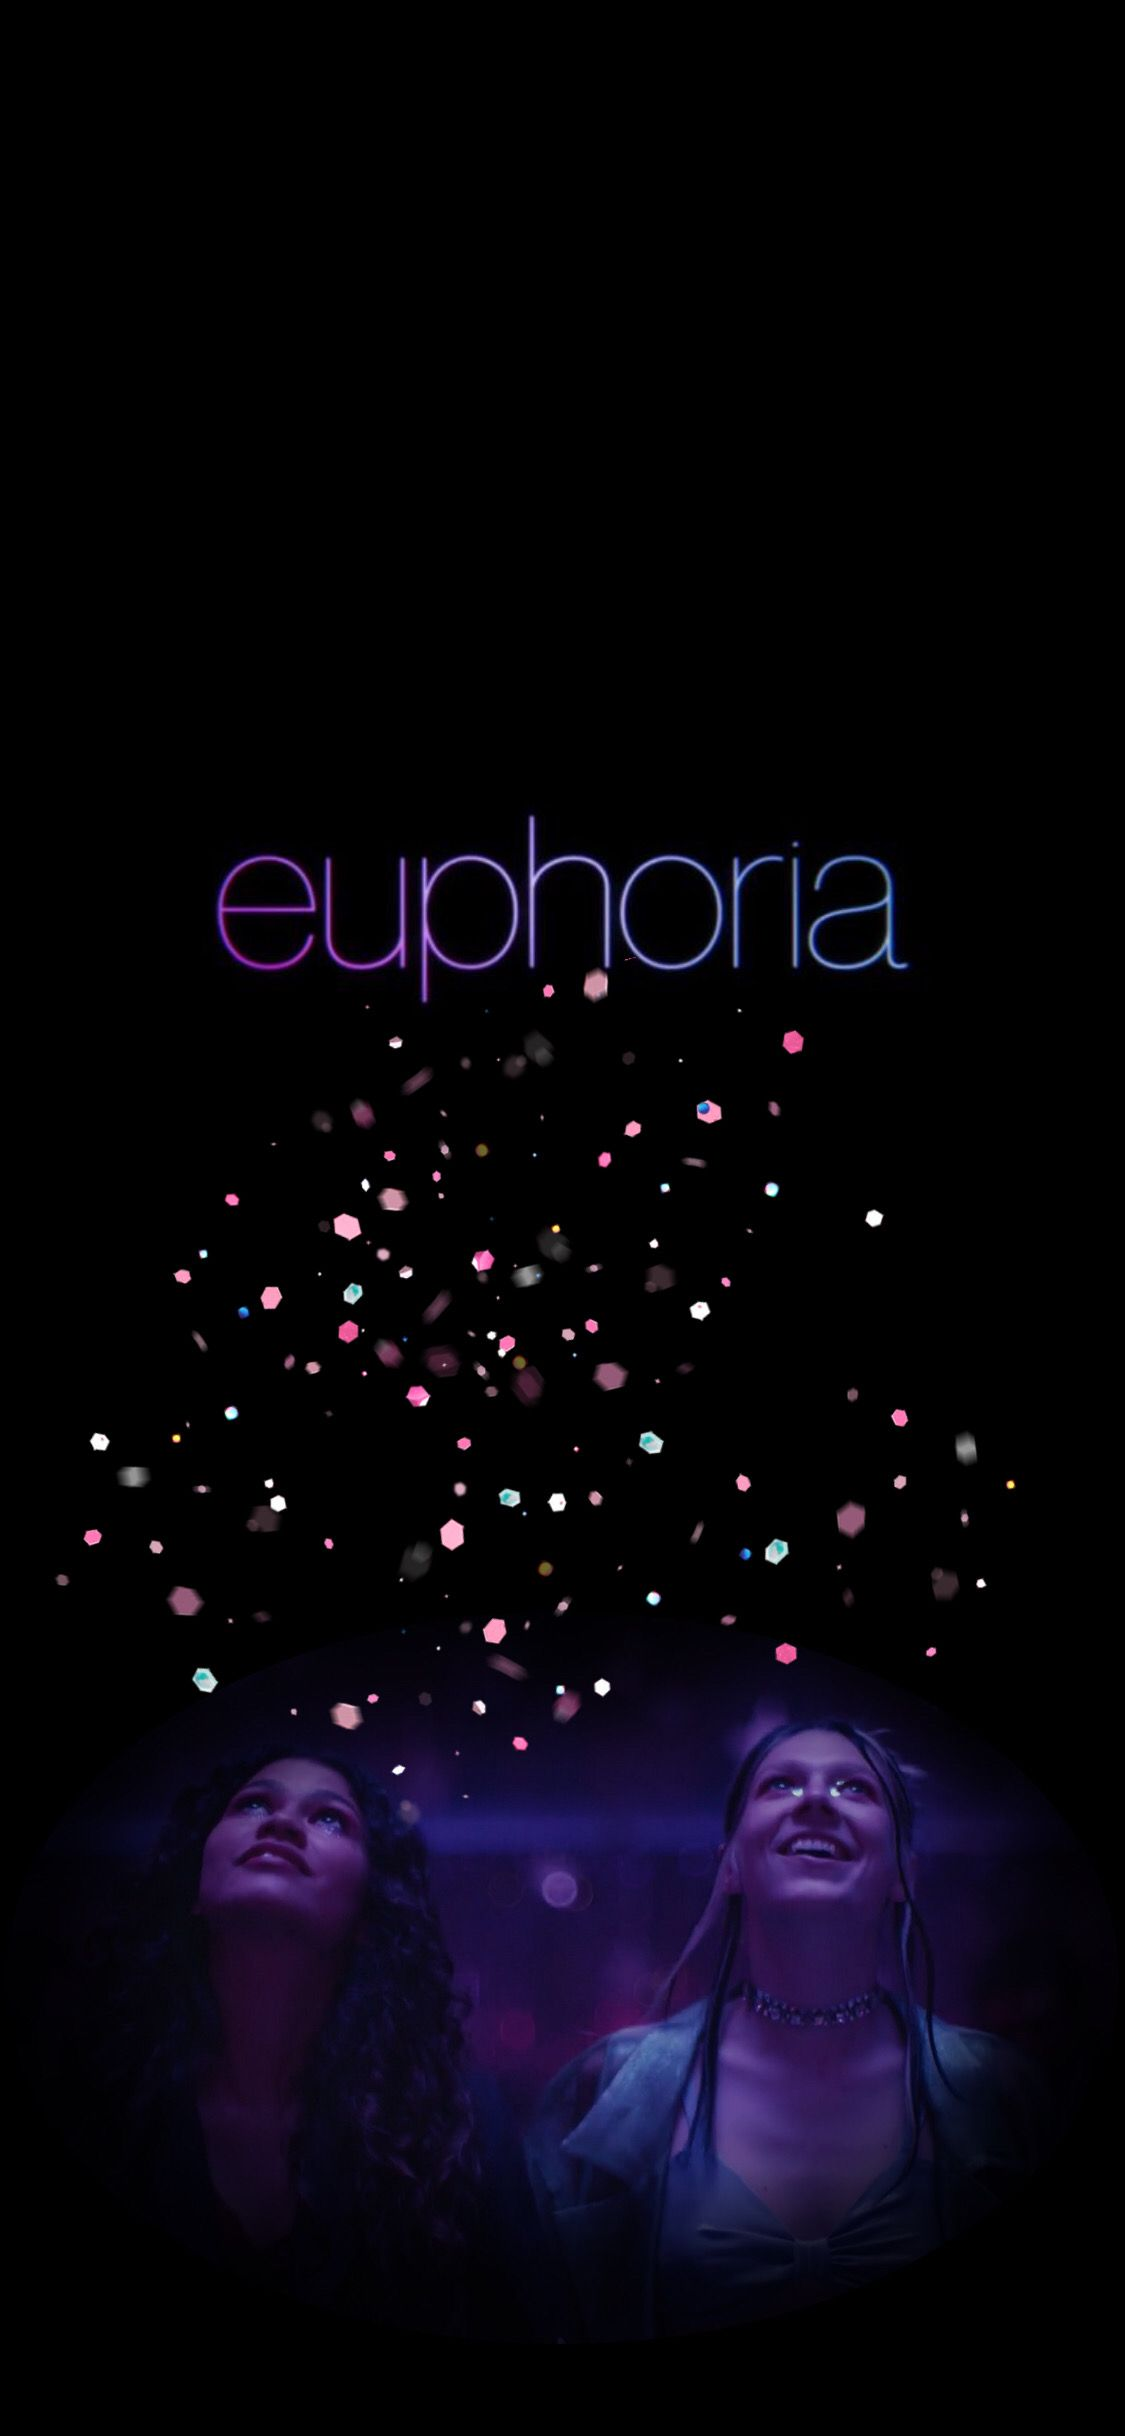 Wallpapers for IPhone Euphoria HBO Rules | Зендая коулман ...